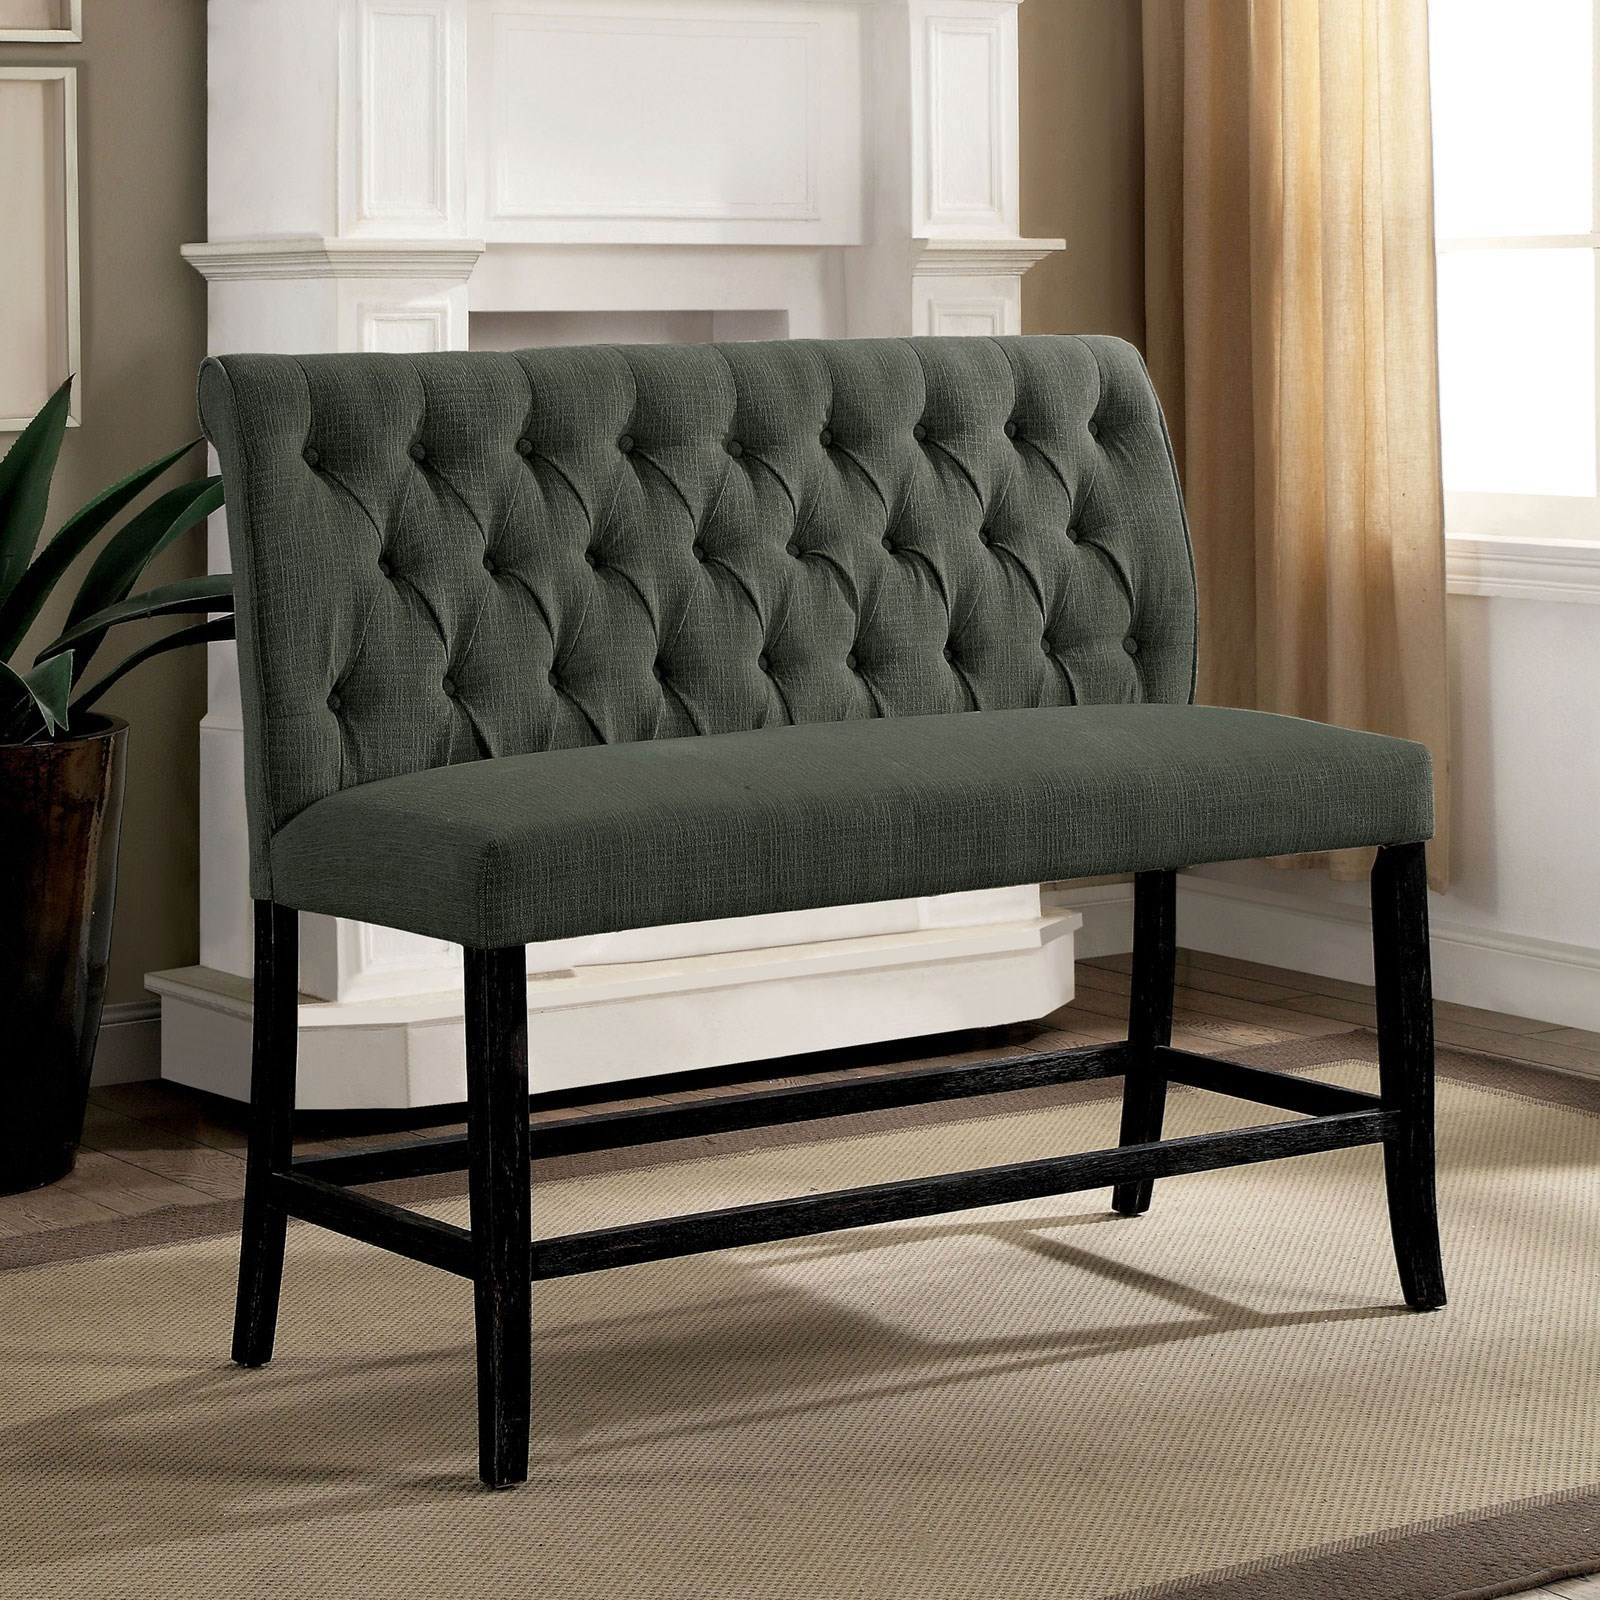 Furniture Of America Izzy Transitional Counter Height Upholstered Bench With Tufted Back Dream Home Interiors Upholstered Benches